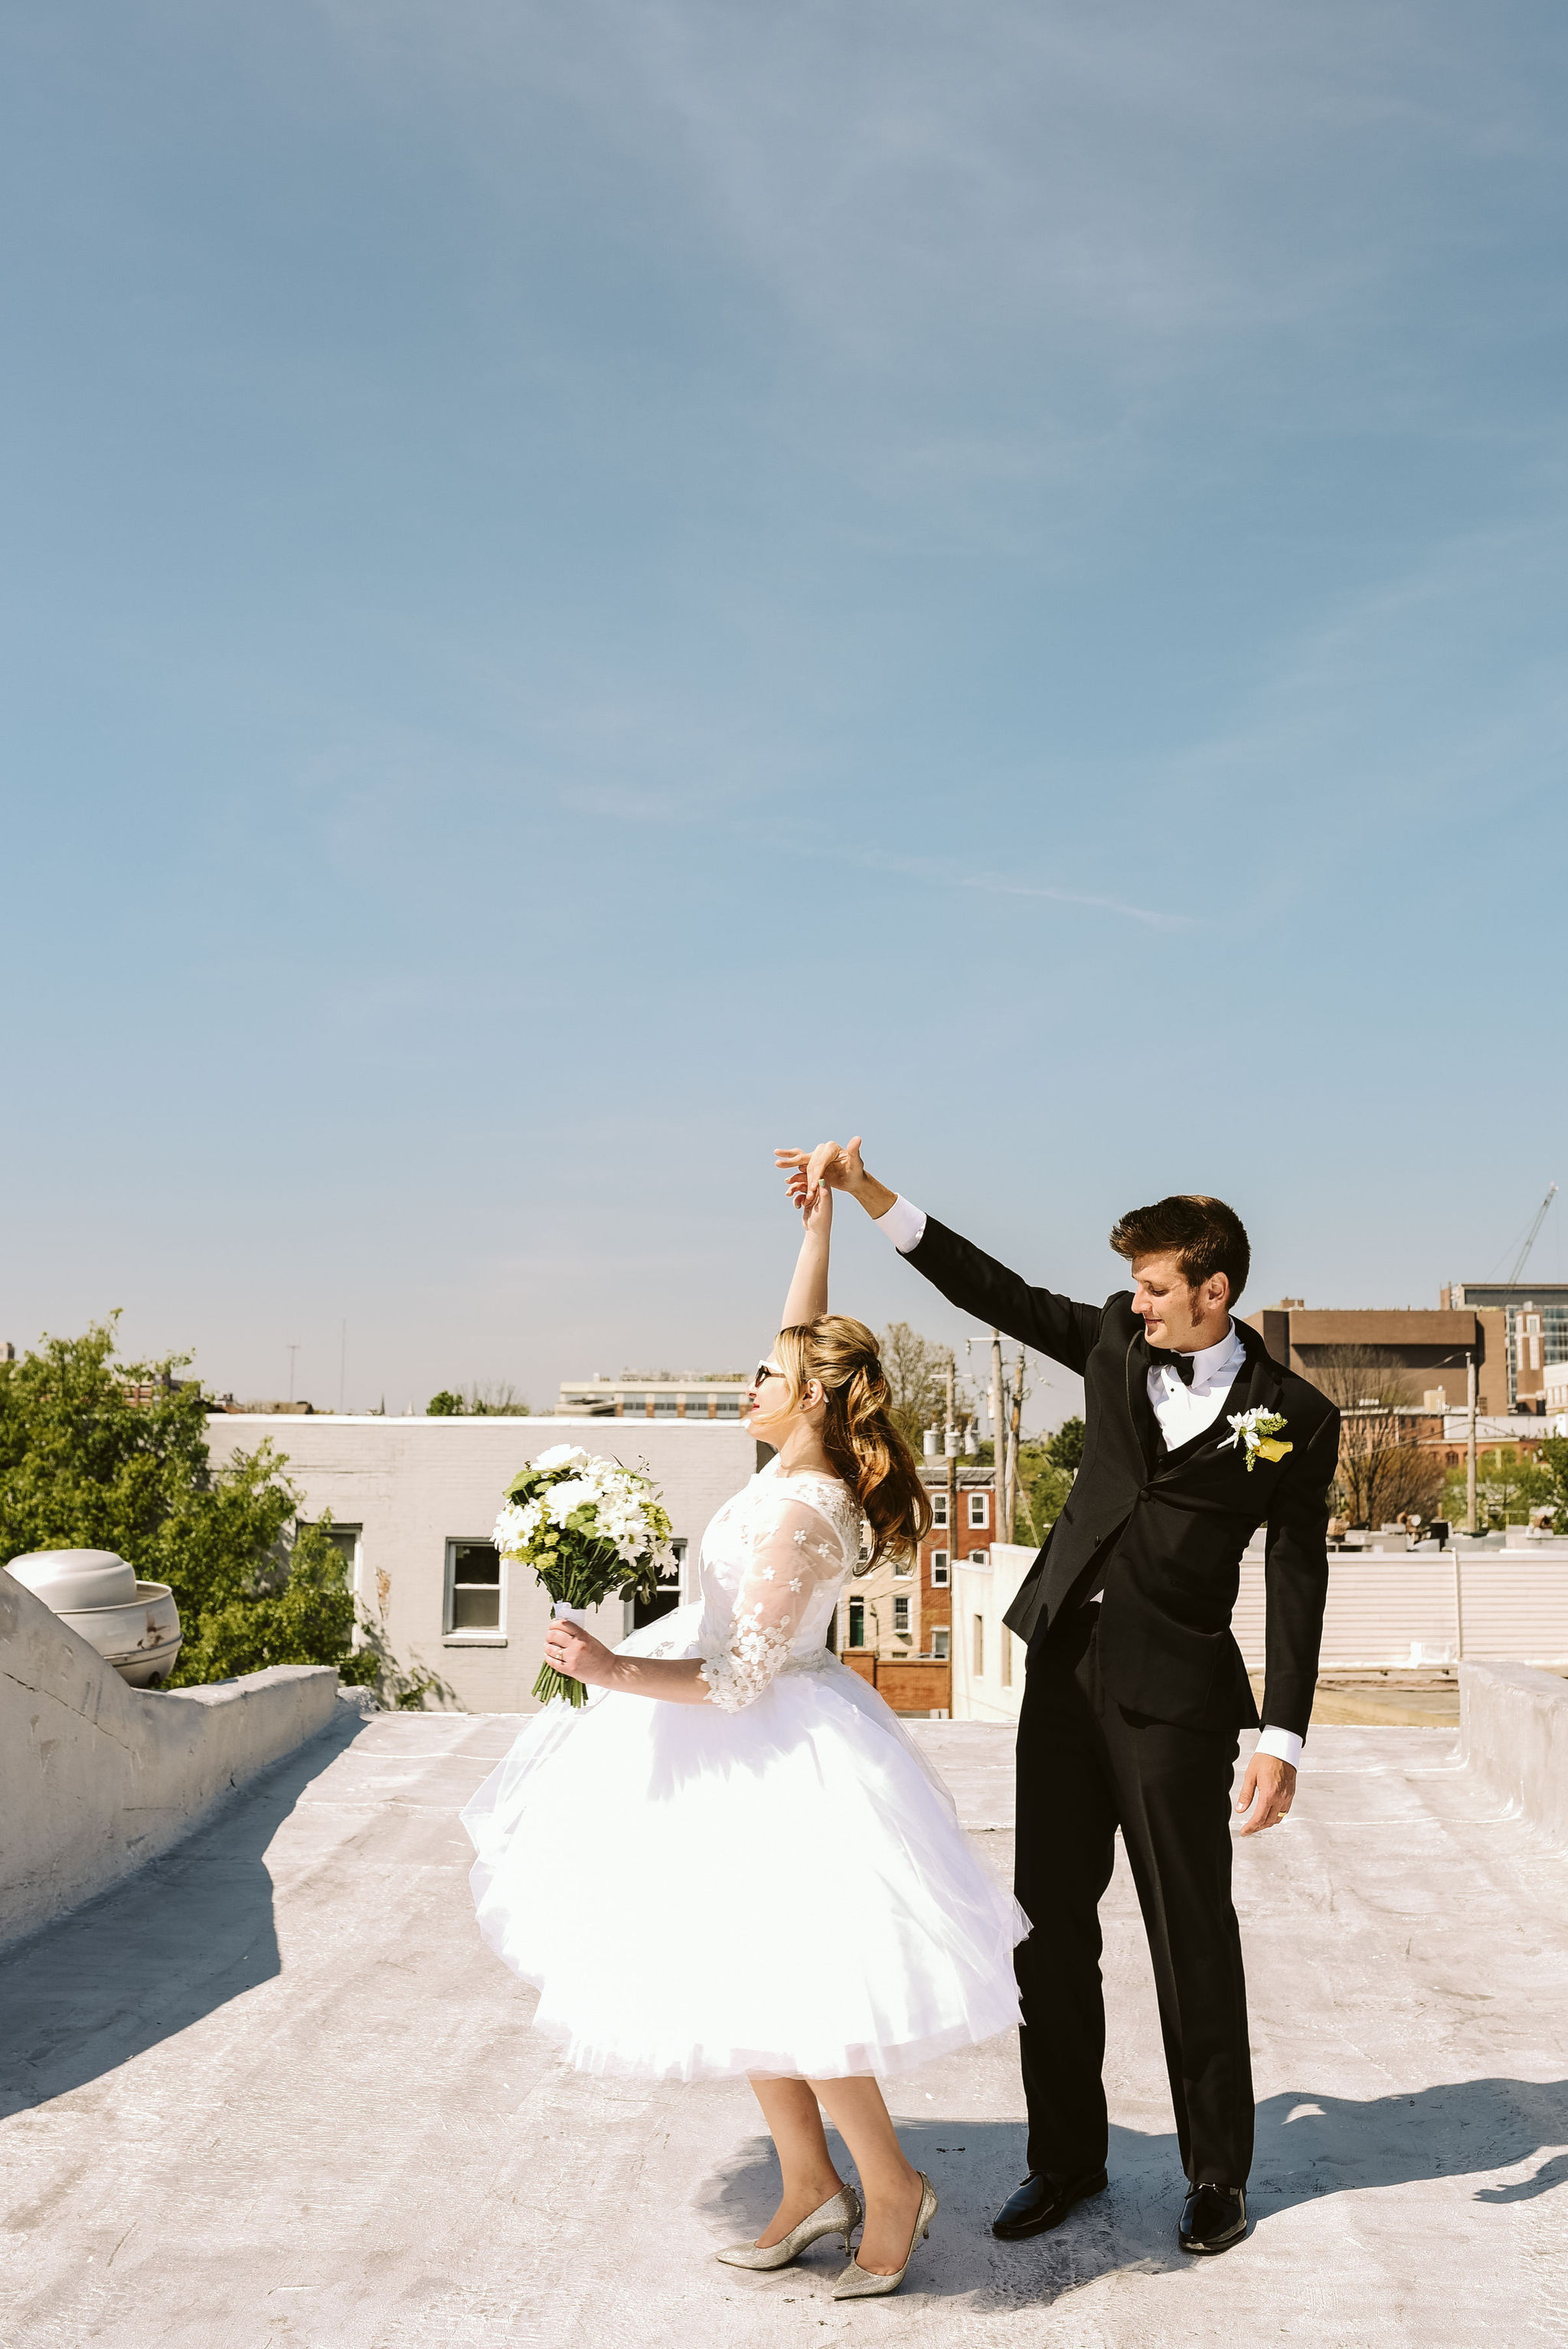 Baltimore, Church Wedding, Maryland Wedding Photographer, Vintage, Classic, 50s Style, Groom Twirling Bride, Dancing on Rooftop, Black Suit, Lace and Tulle Wedding Dress, Outdoor